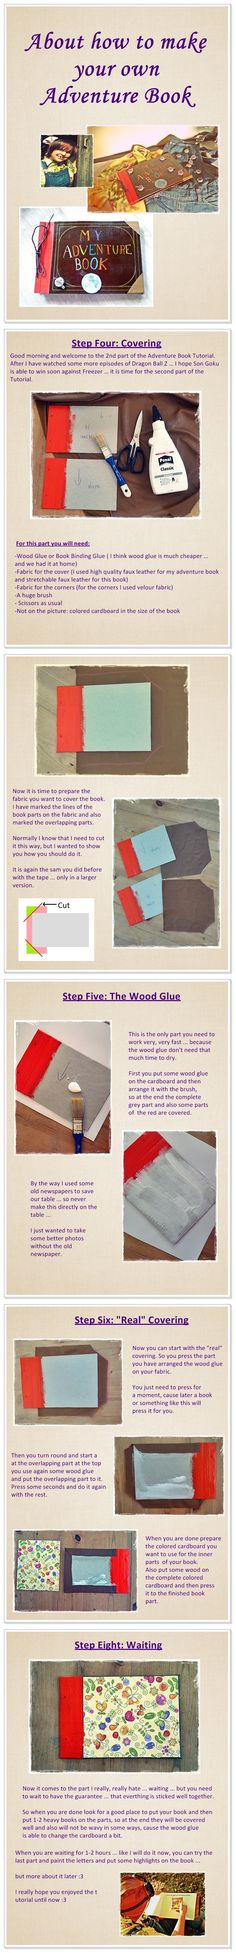 Adventure Book Tutorial II by Plushbox on DeviantArt